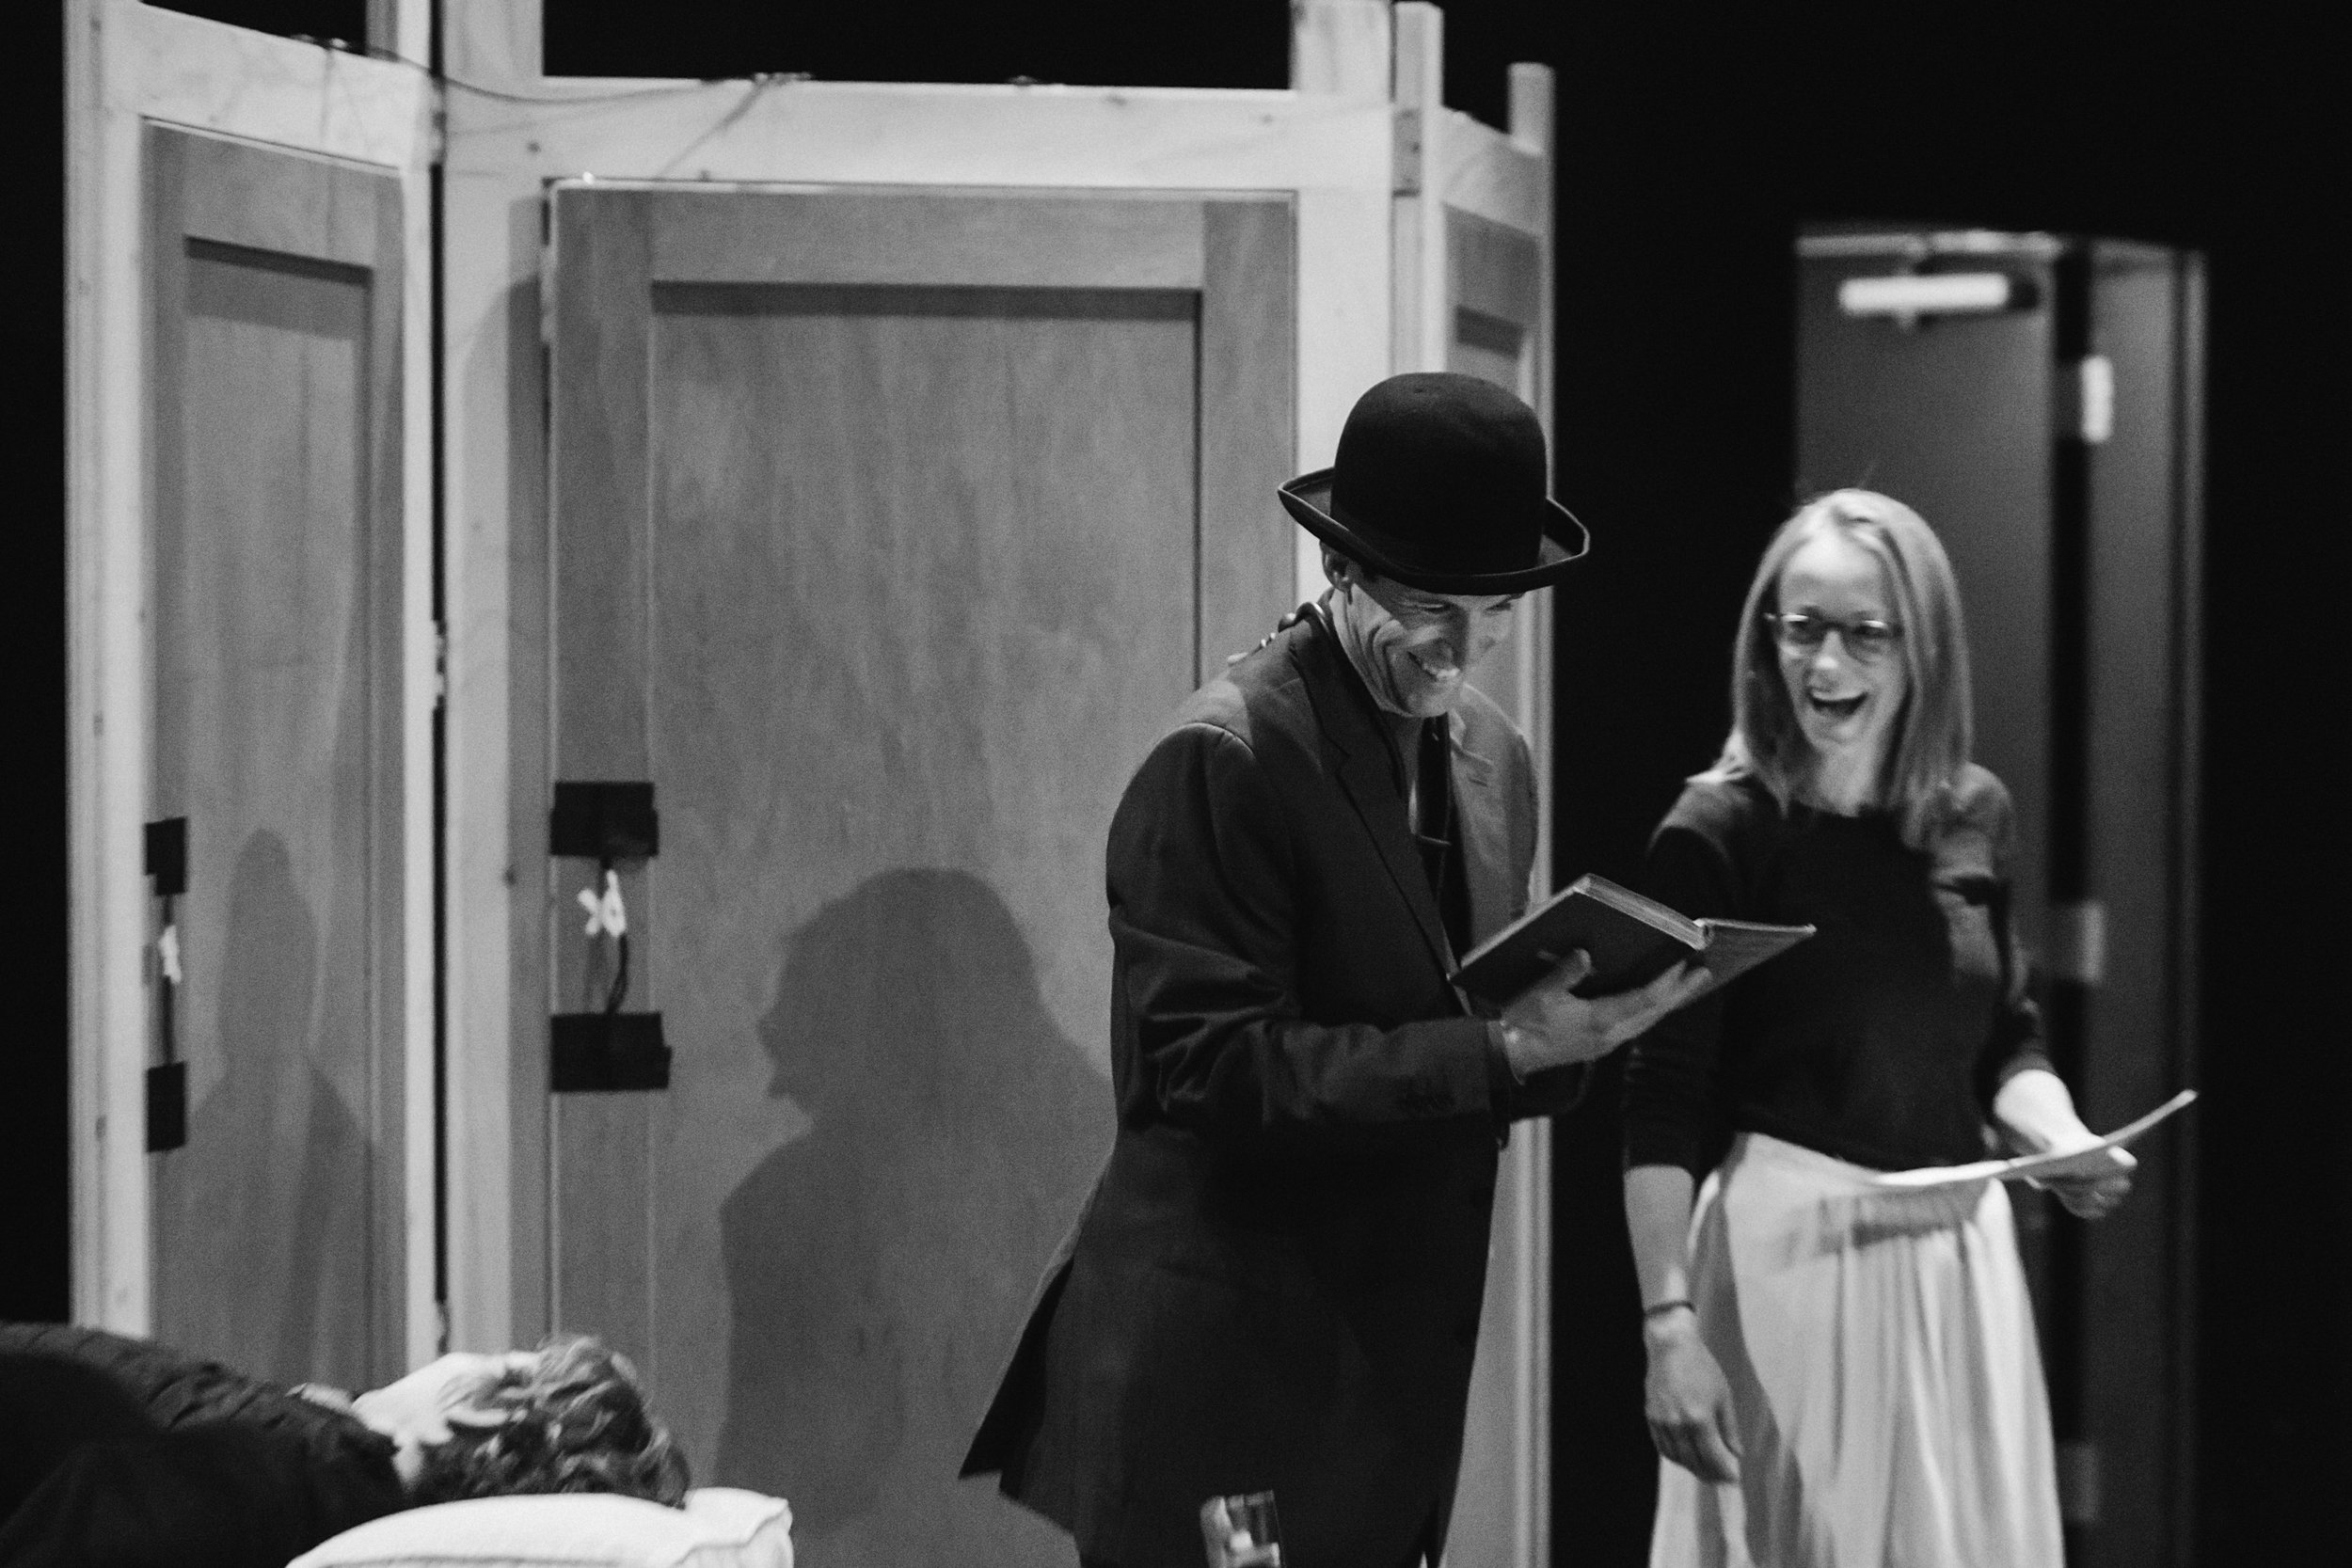 Rehearsals for DRACULA: THE BLOODY TRUTH. Featuring Stafford Perry and Julie Orton. Diane + Mike Photography